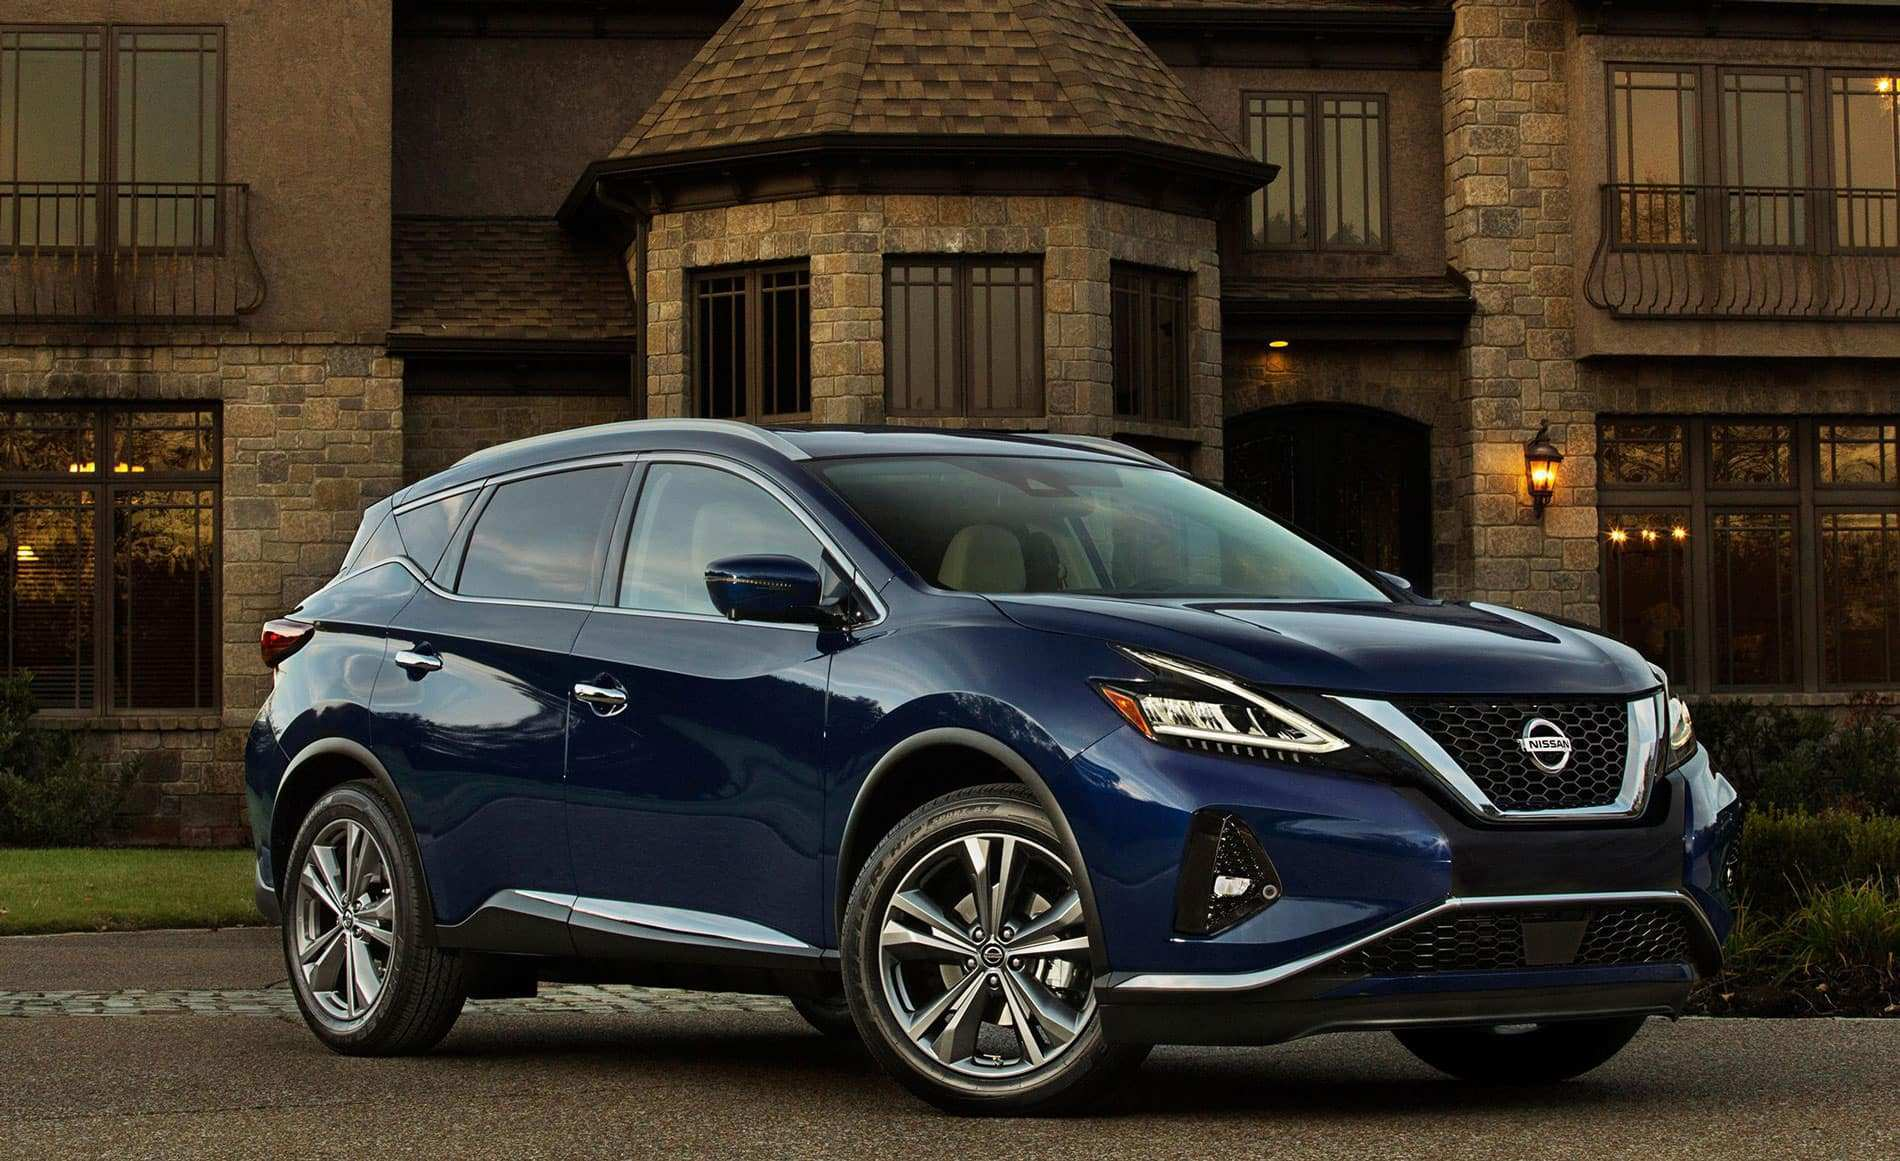 84 A 2019 Nissan Murano Images